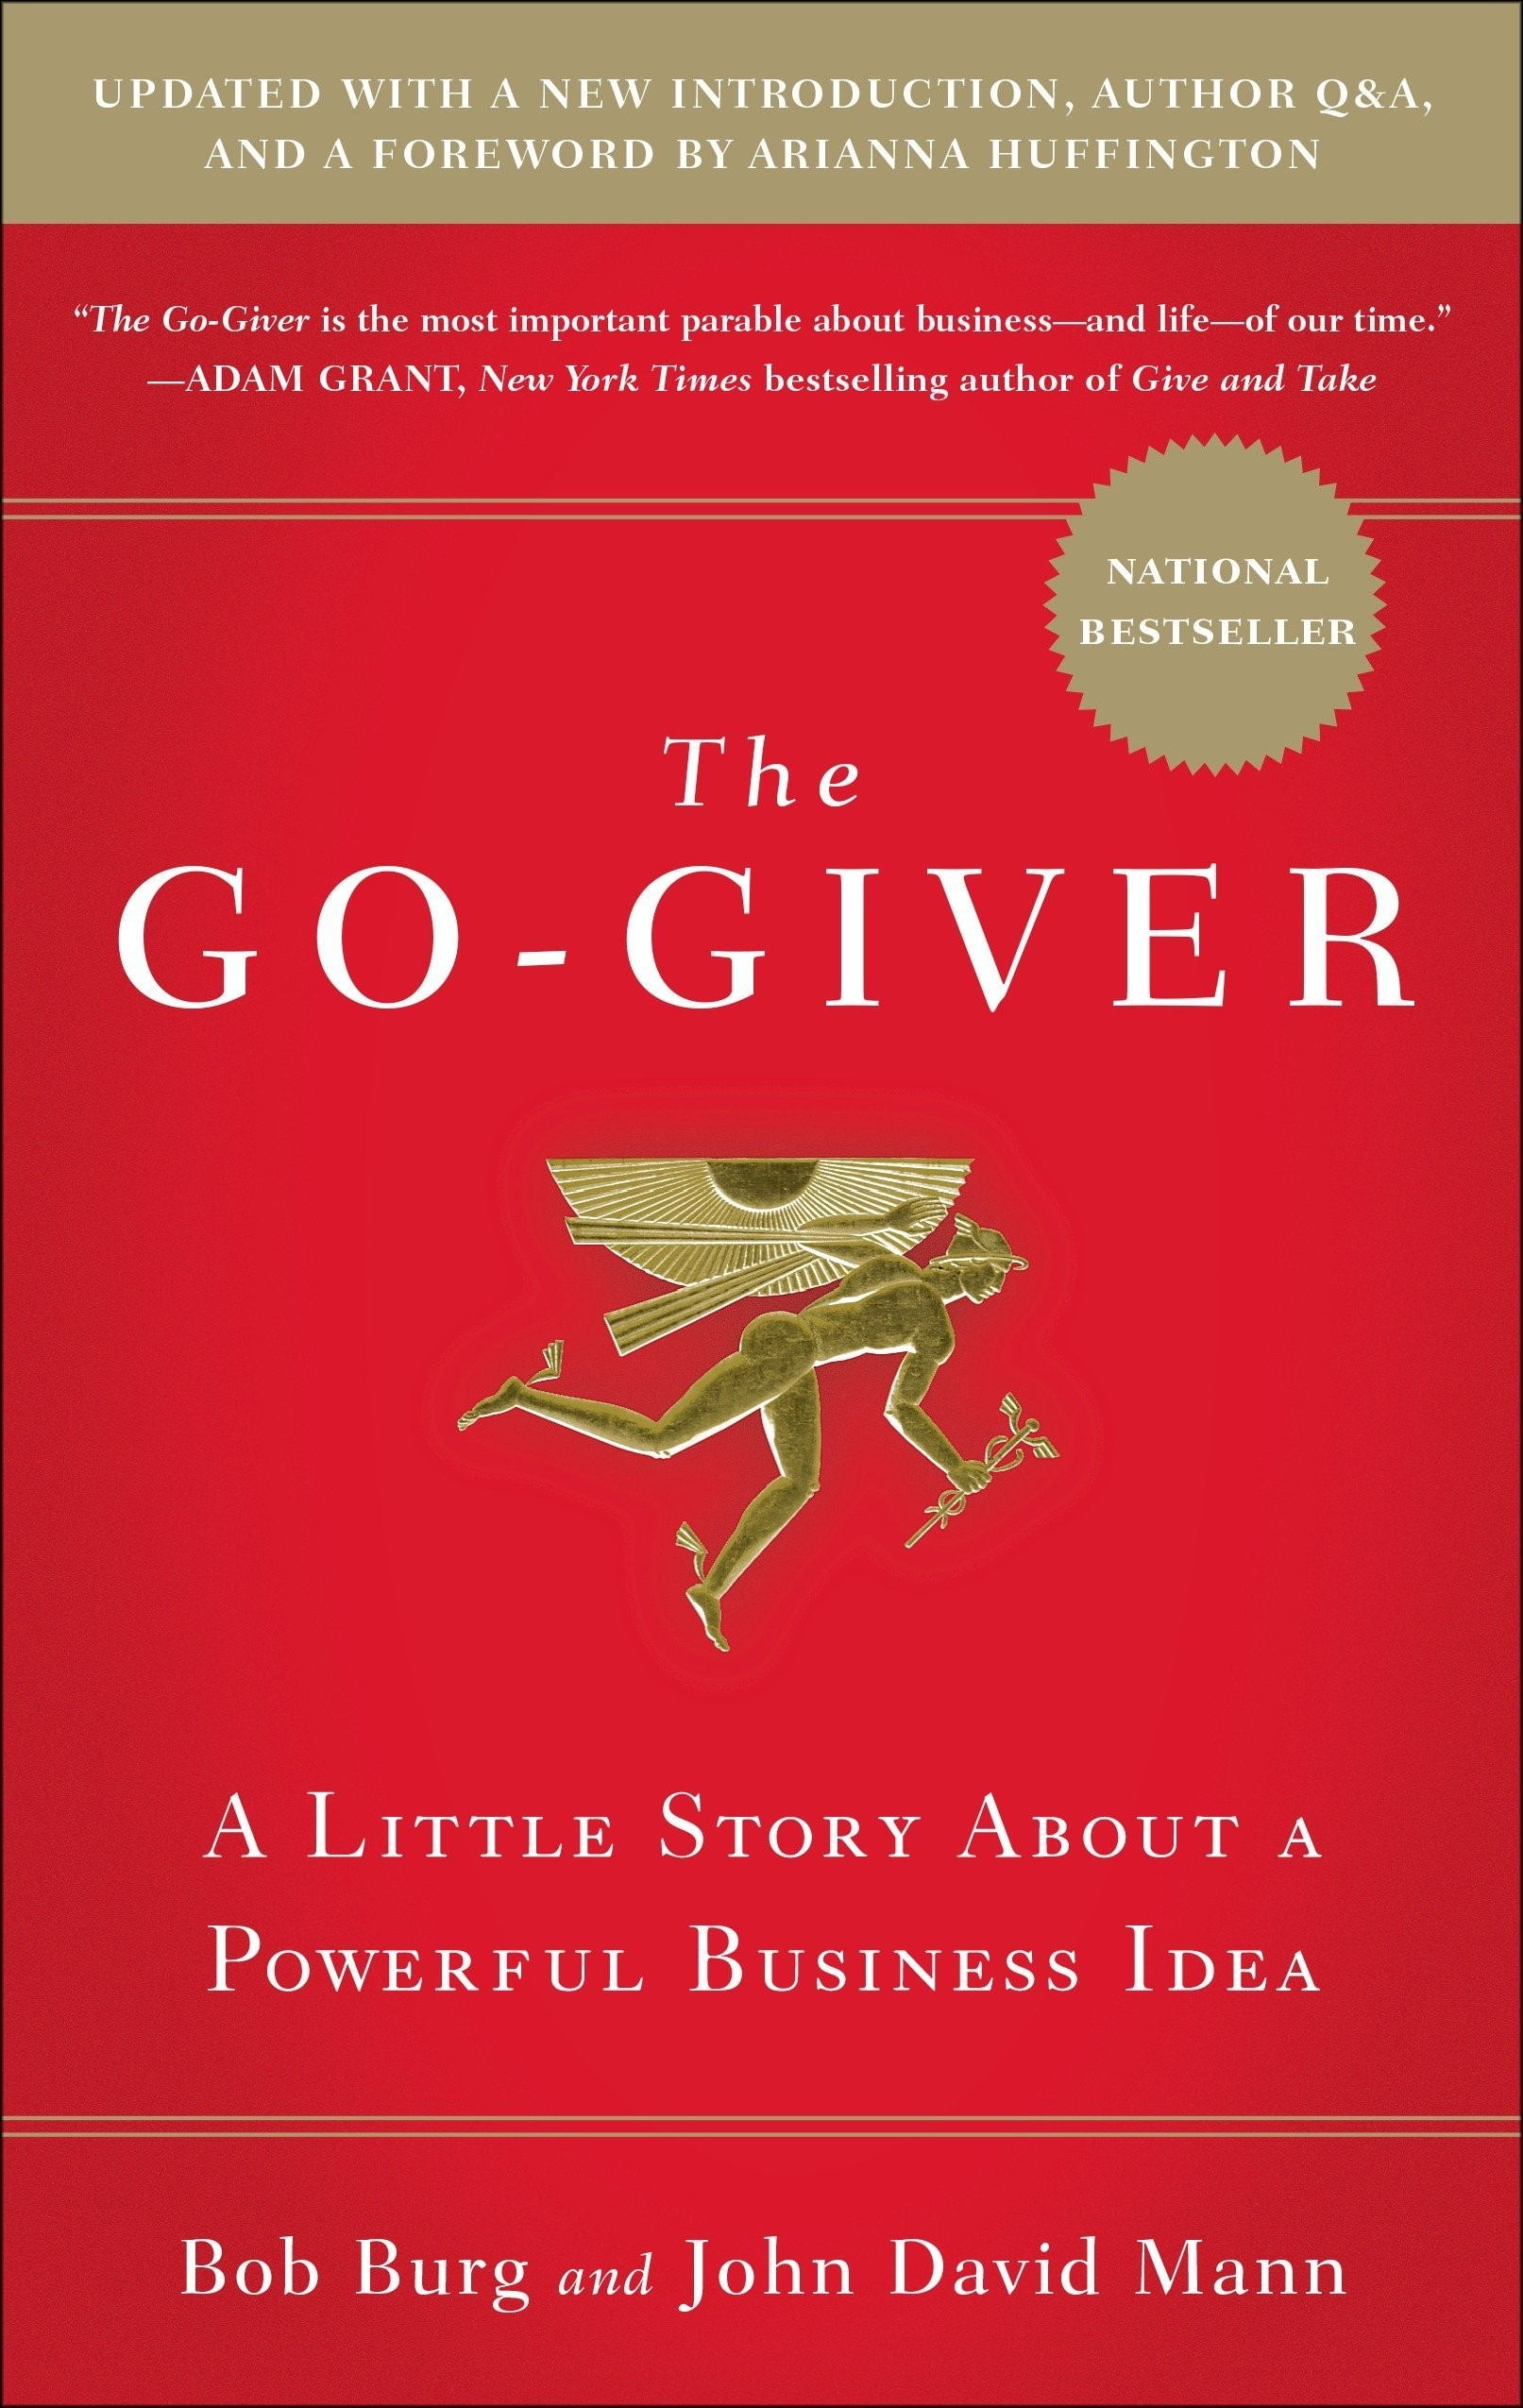 go giver cover.jpg